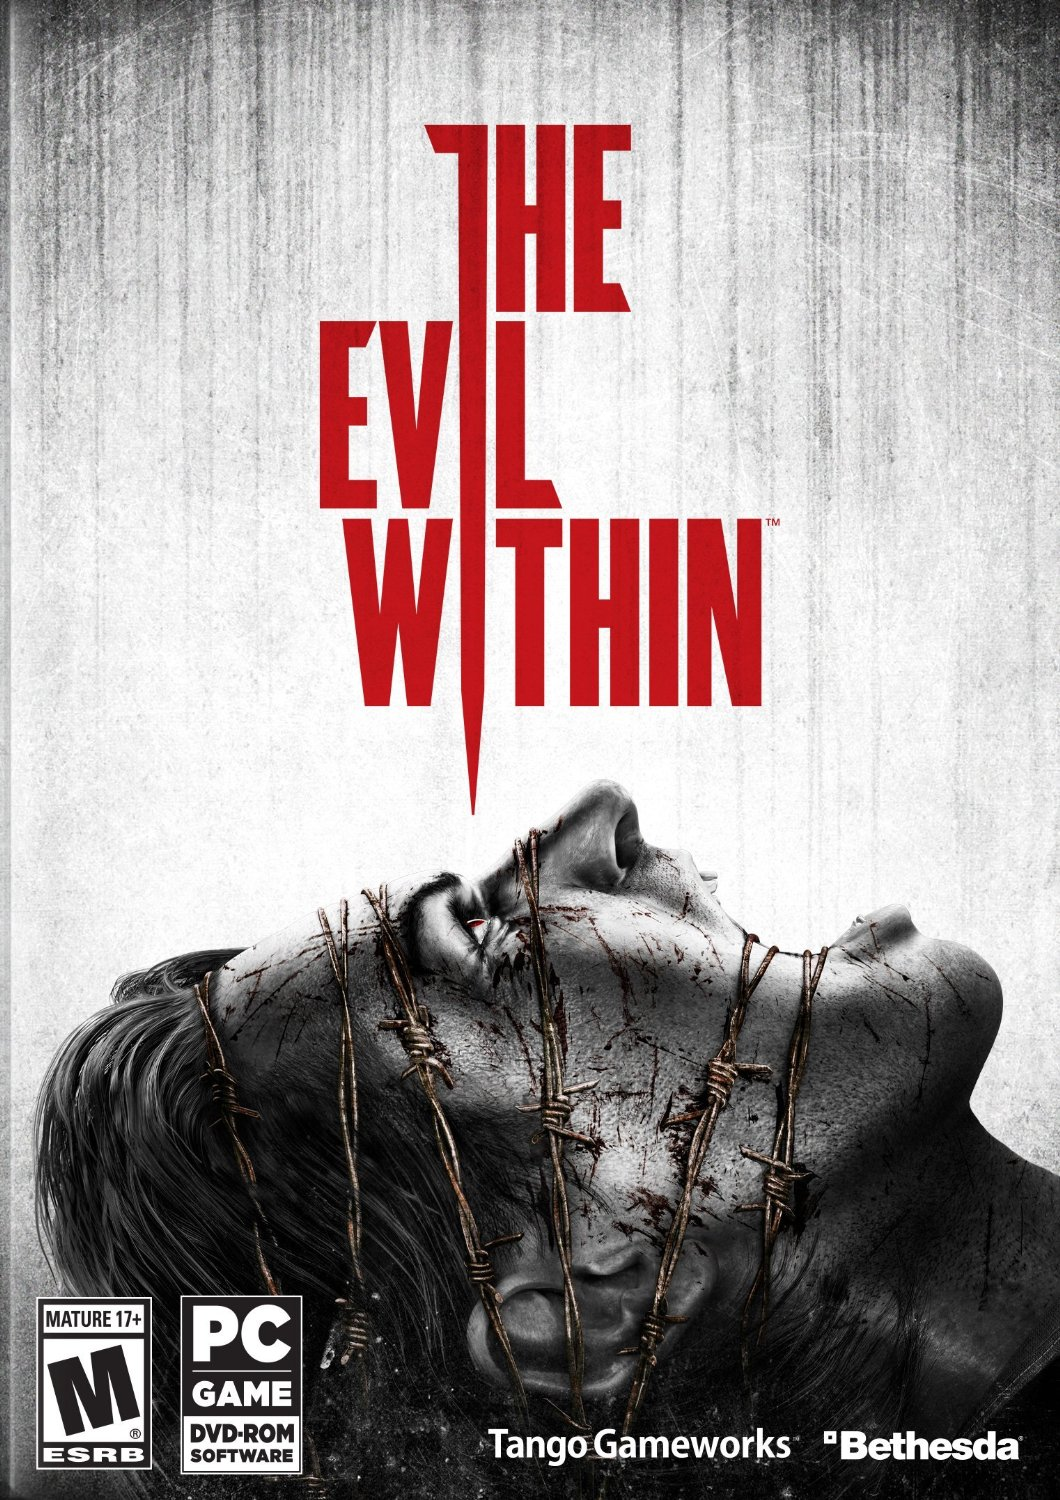 http://img5.downloadha.com/hosein/Game/October%202014/14/The-Evil-Within-pc-cover-large.jpg